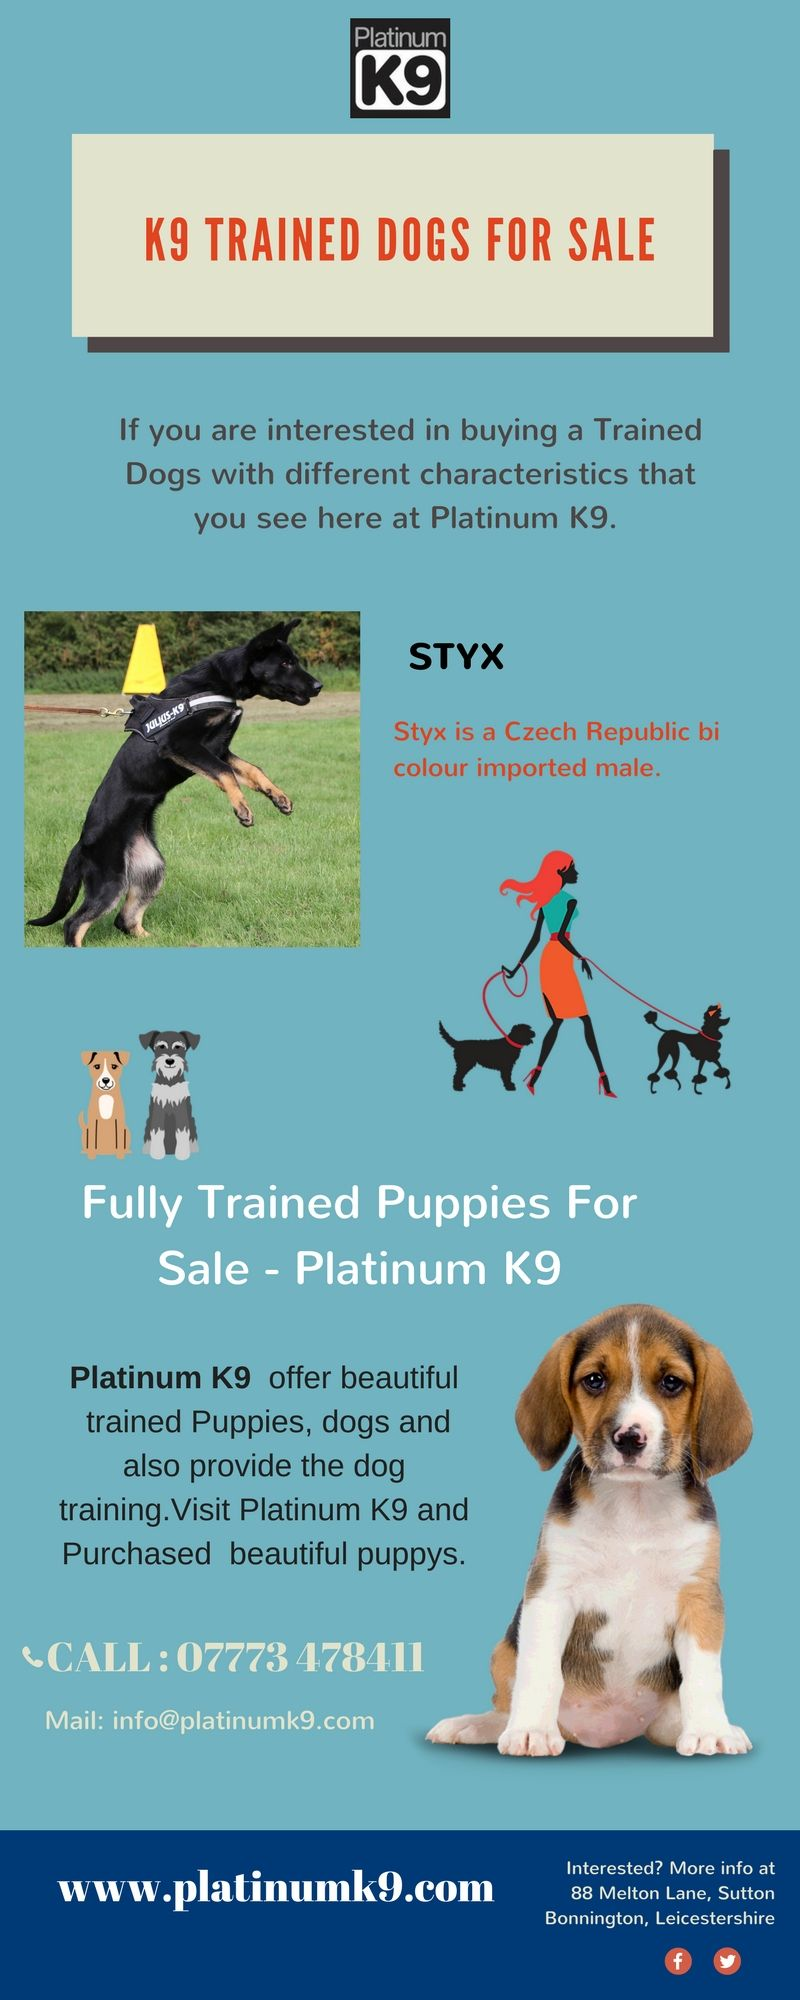 Contact Platinum K9 Our Trained Puppies For Sale At An Moderate